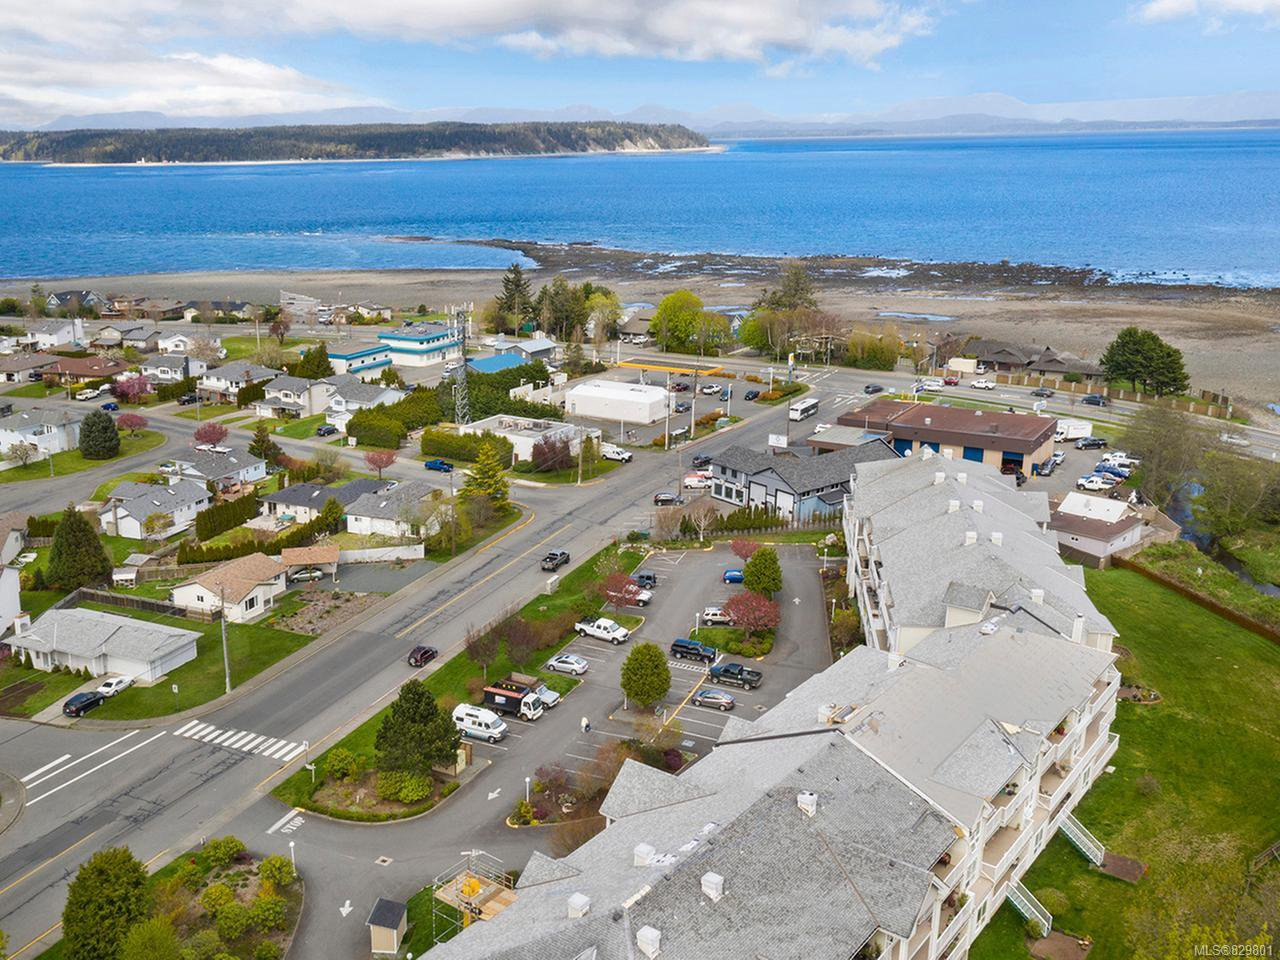 Photo 22: Photos: 311 155 Erickson Rd in CAMPBELL RIVER: CR Willow Point Condo for sale (Campbell River)  : MLS®# 829801